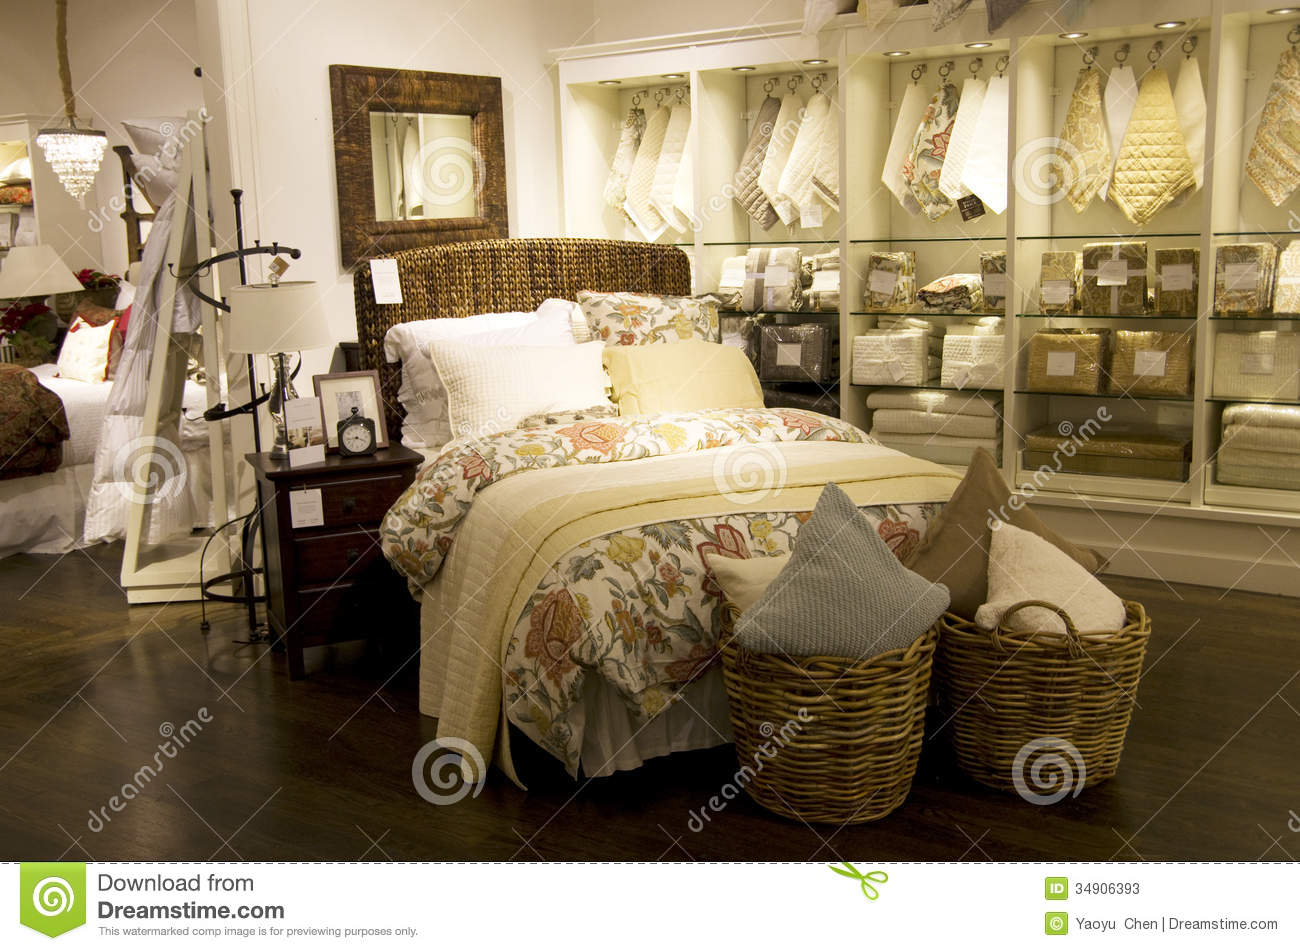 Home Bedroom Decor Furniture Store Stock Image - Image of blanket ...